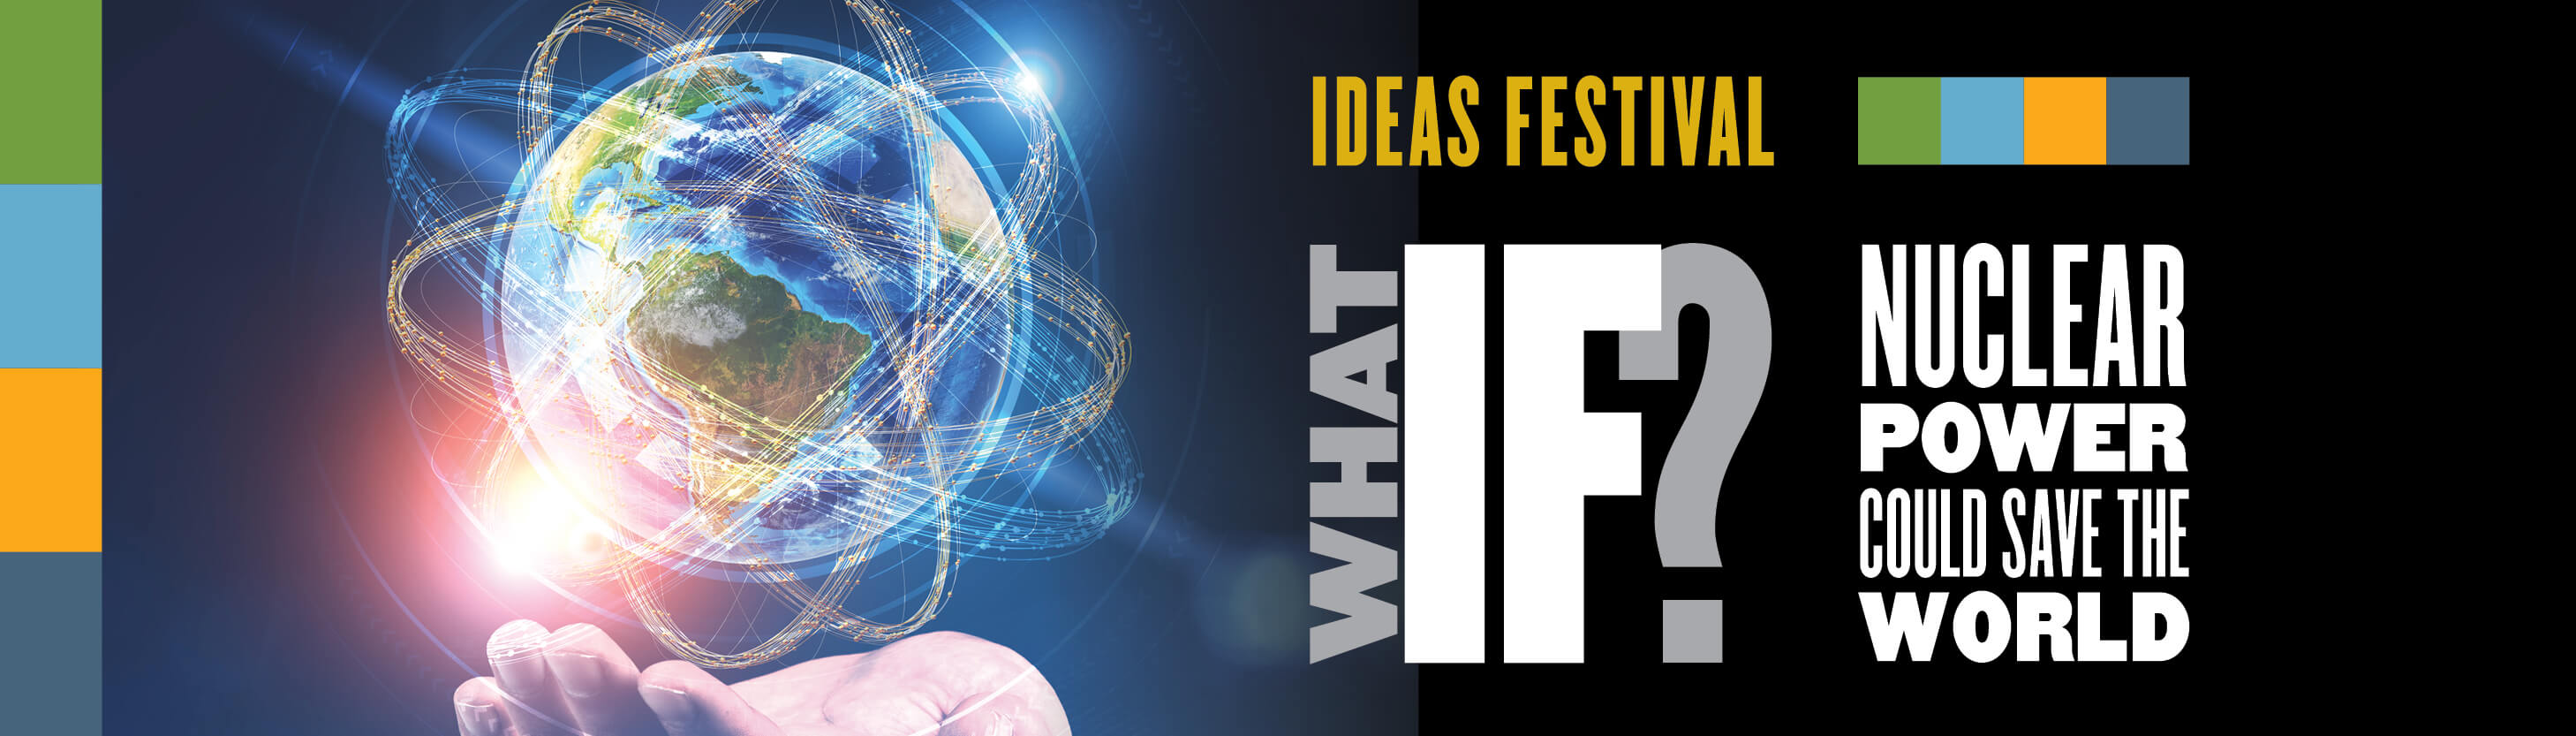 Ideas Festival: What if nuclear power could save the world?